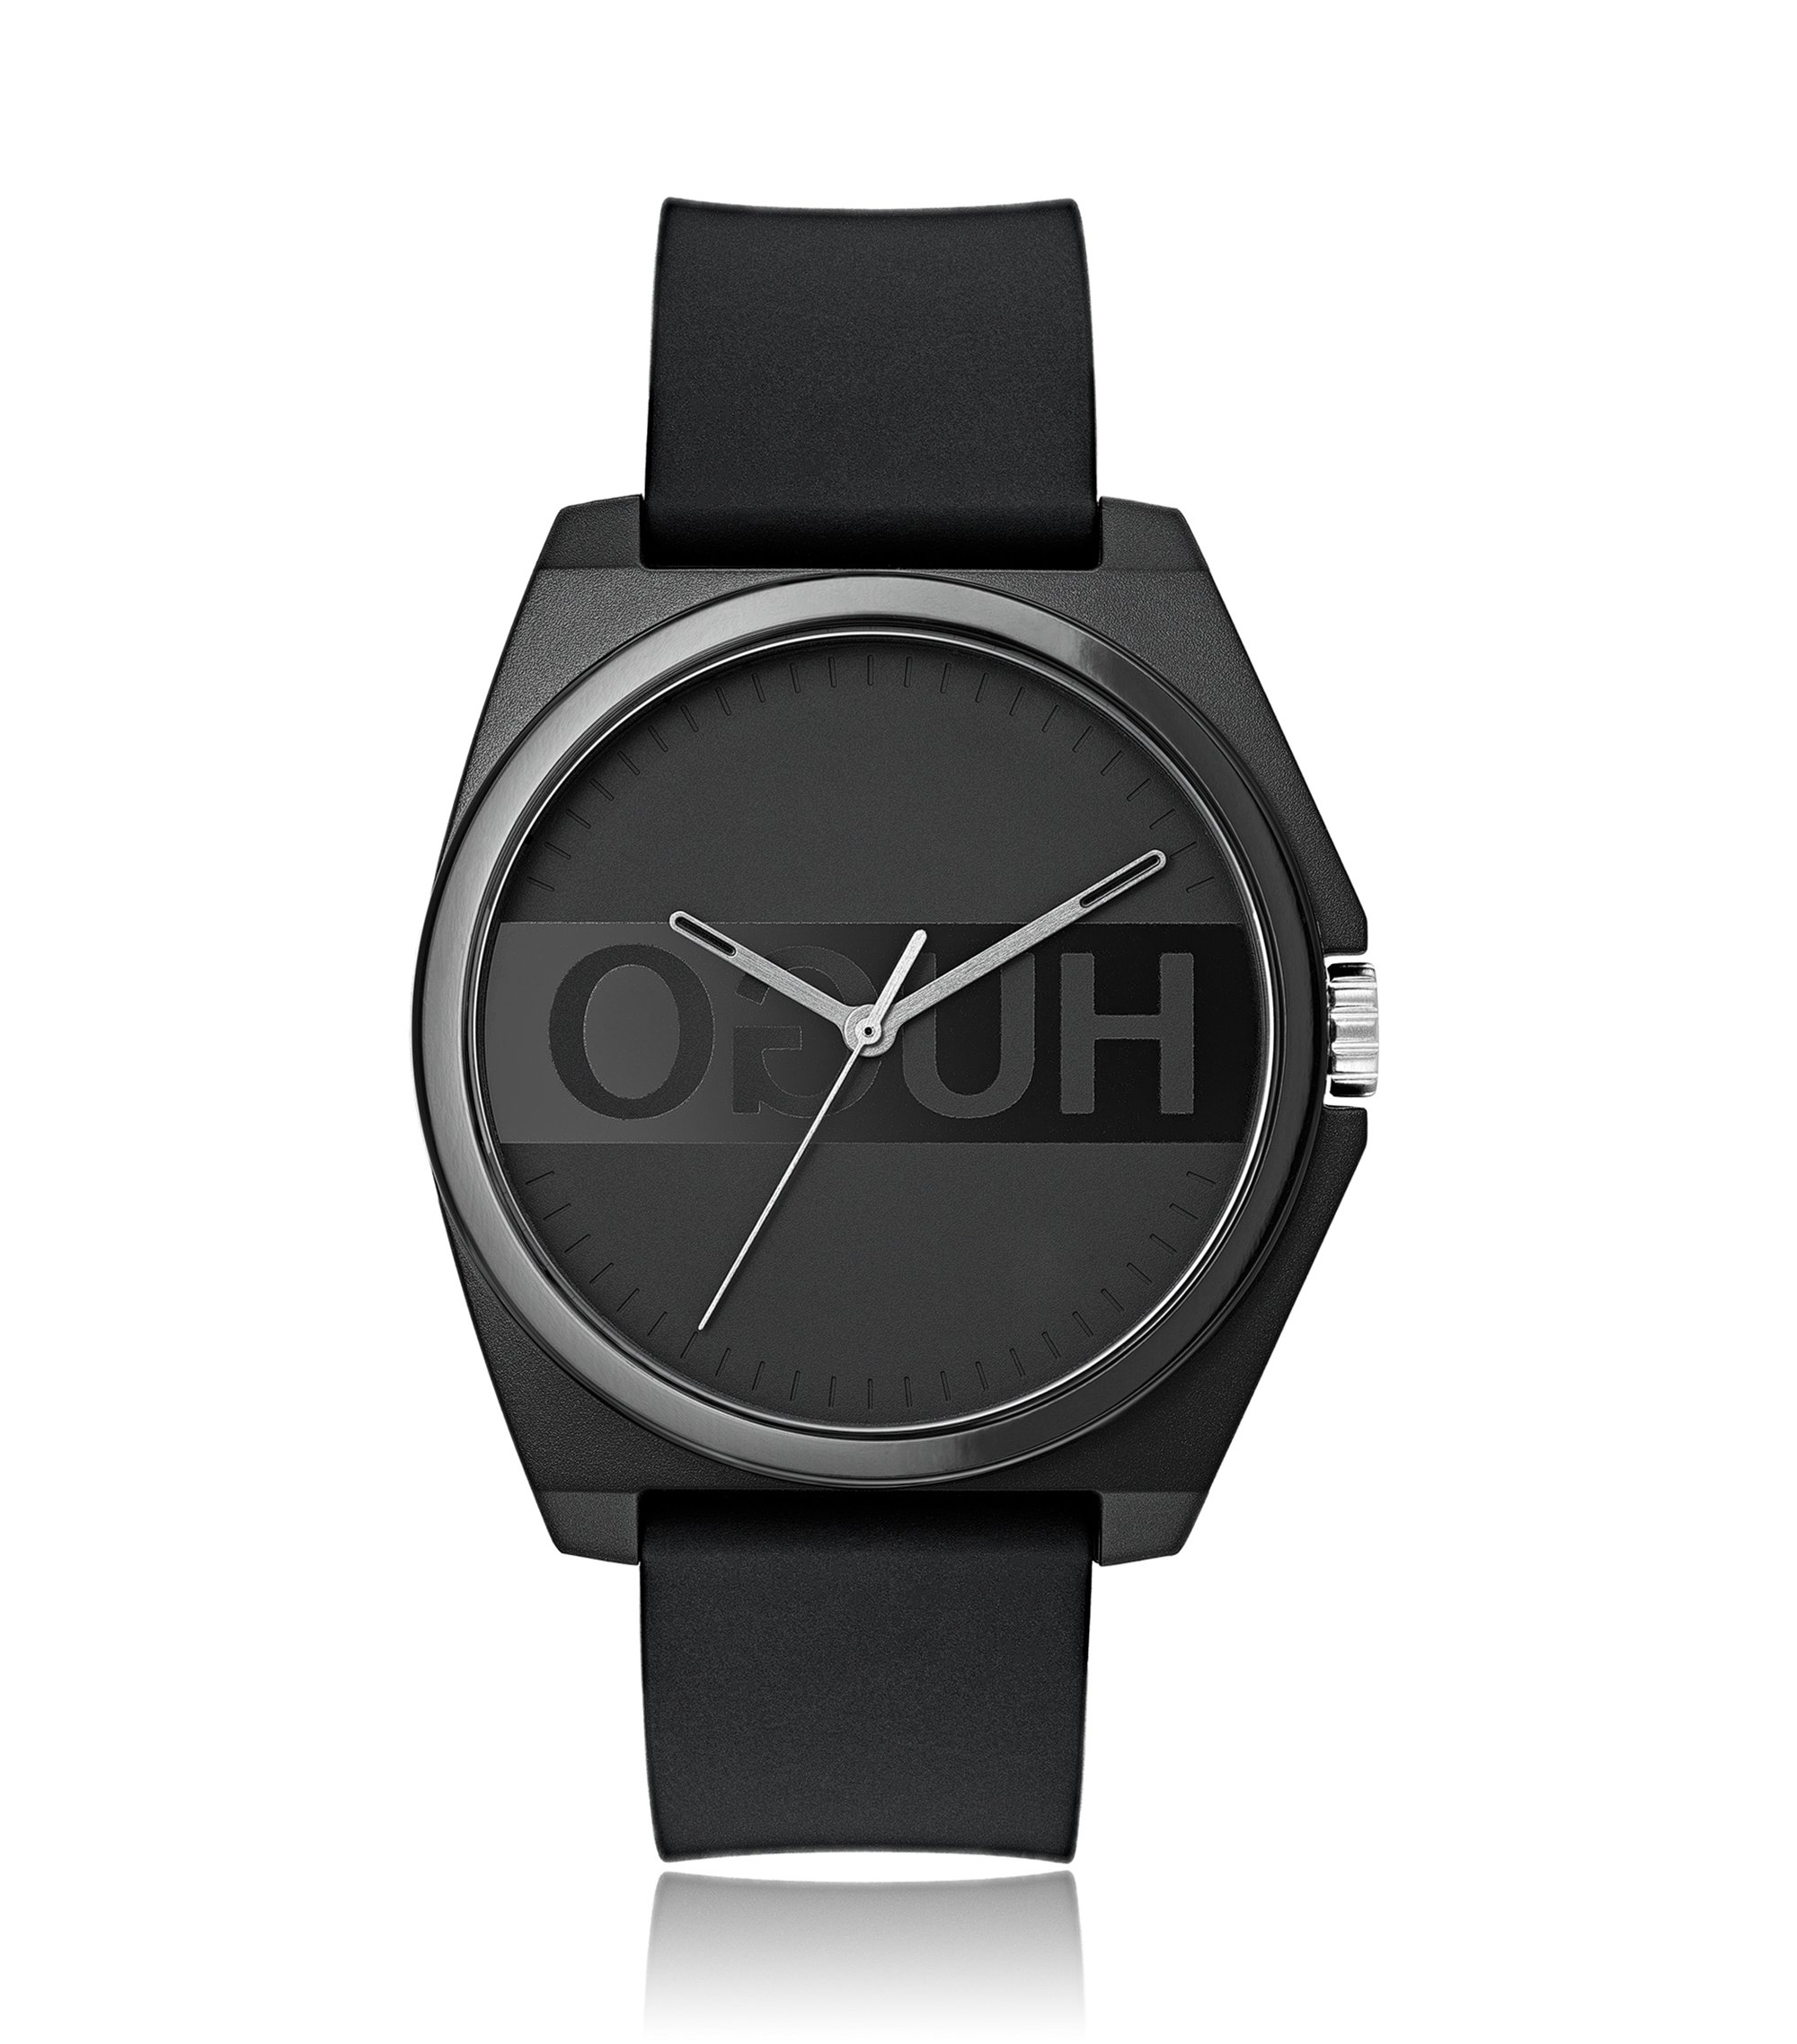 Unisex black watch with reverse logo, Black